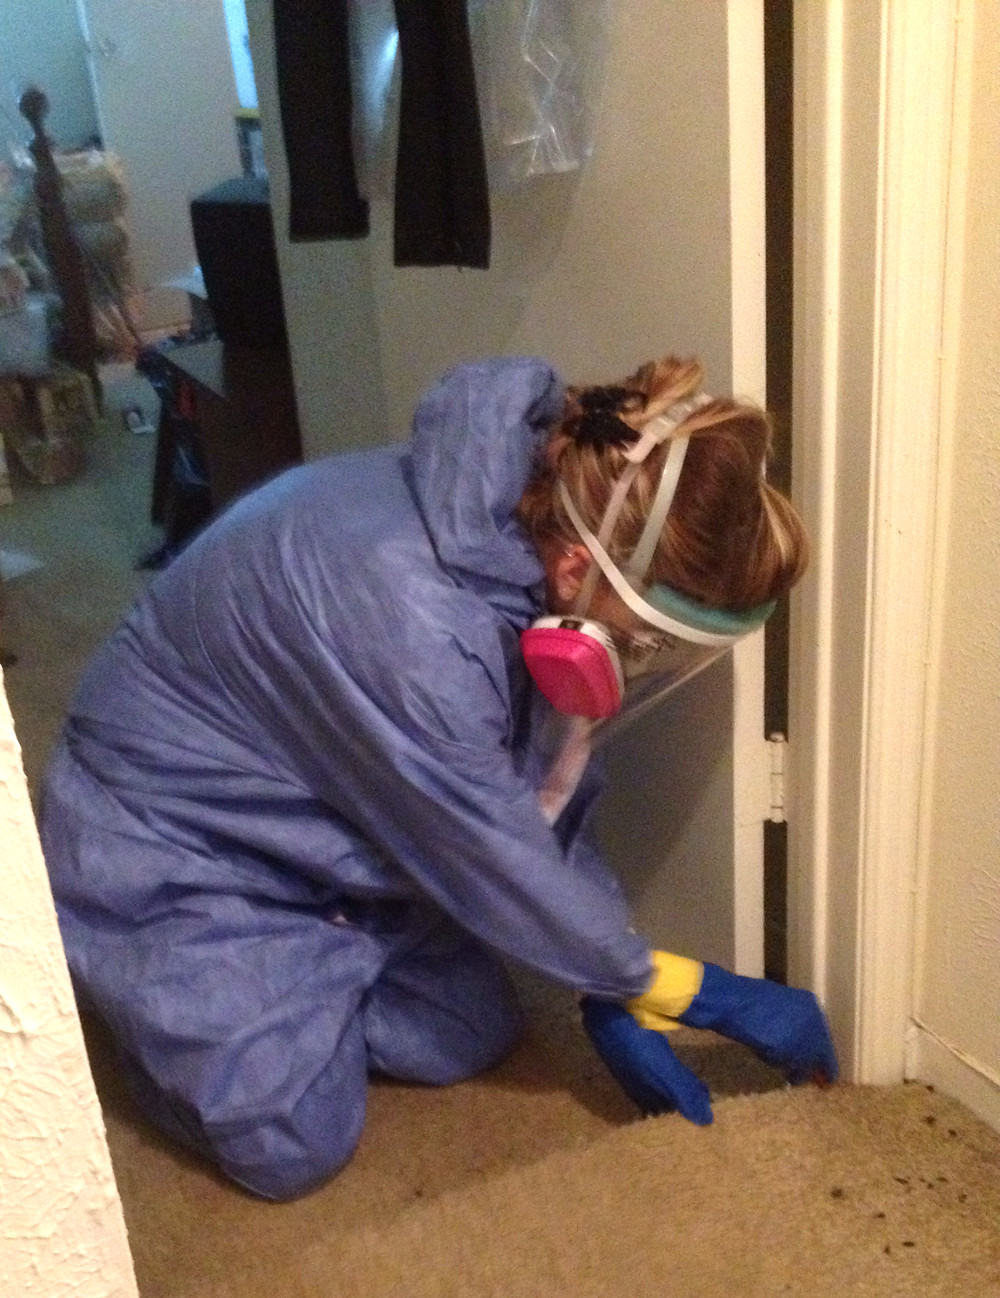 dfw medical waste disposal, human decomposition cleanup in an apartment